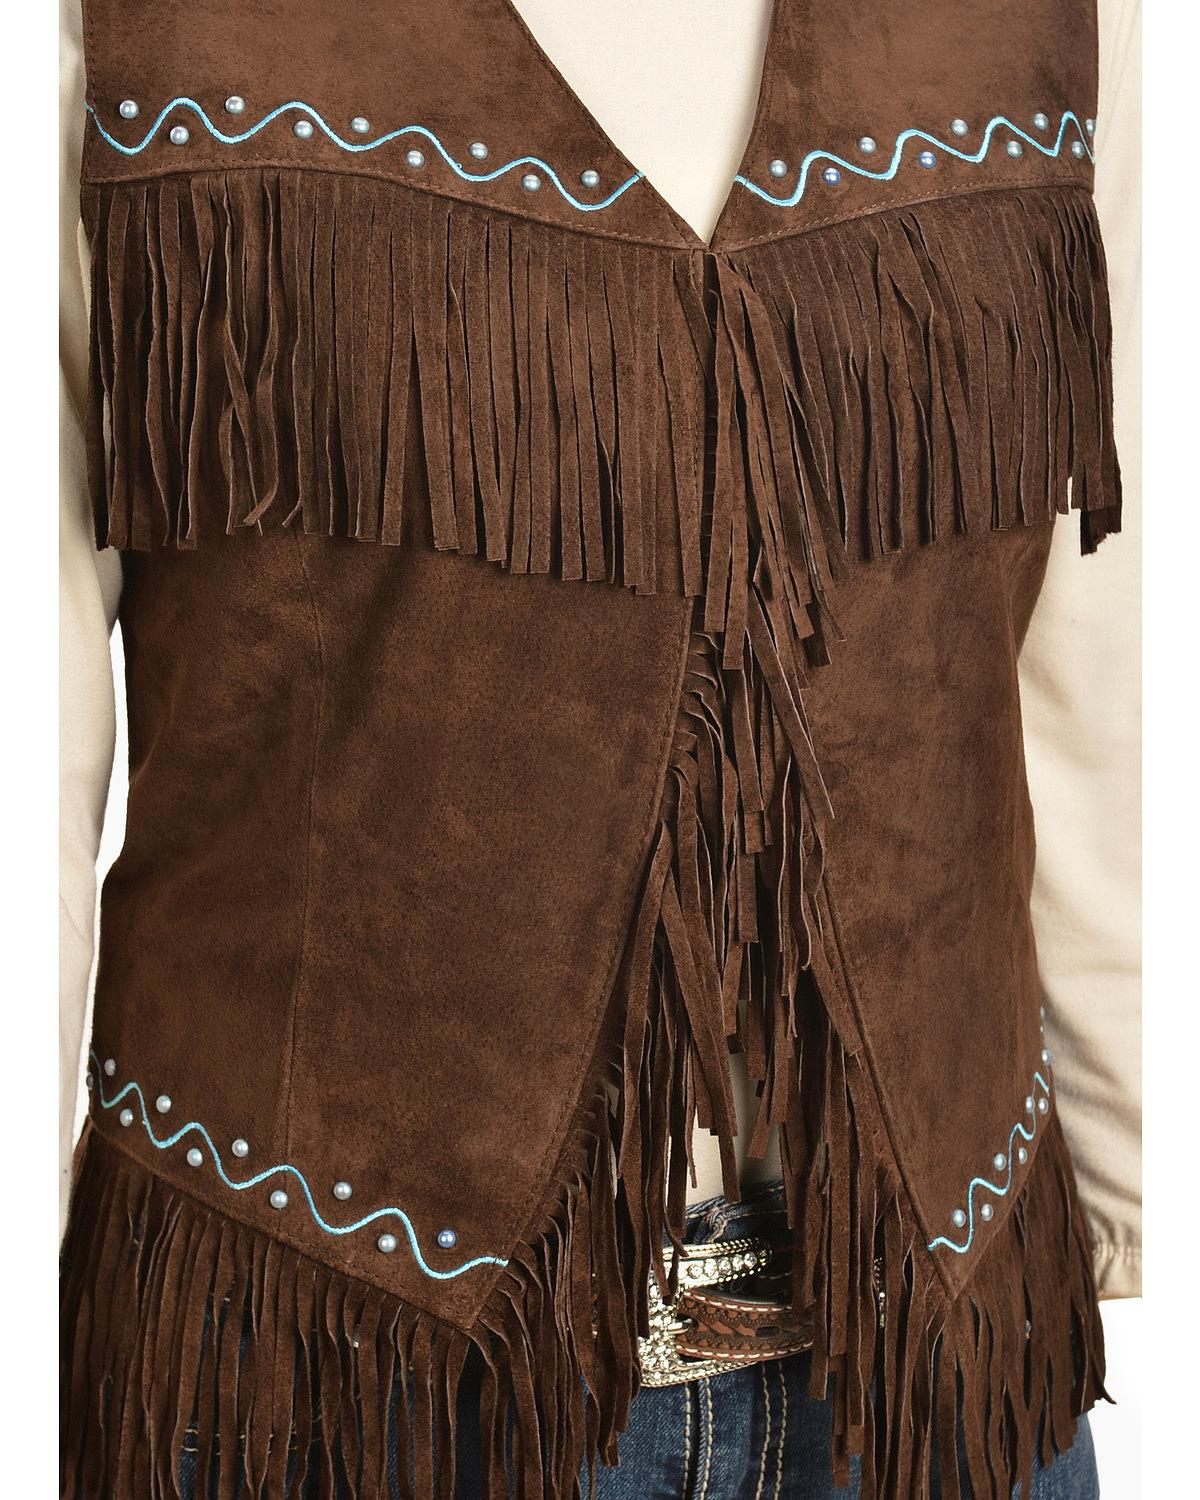 You searched for: leather fringe vest! Etsy is the home to thousands of handmade, vintage, and one-of-a-kind products and gifts related to your search. No matter what you're looking for or where you are in the world, our global marketplace of sellers can help you find unique and affordable options. Let's get started!